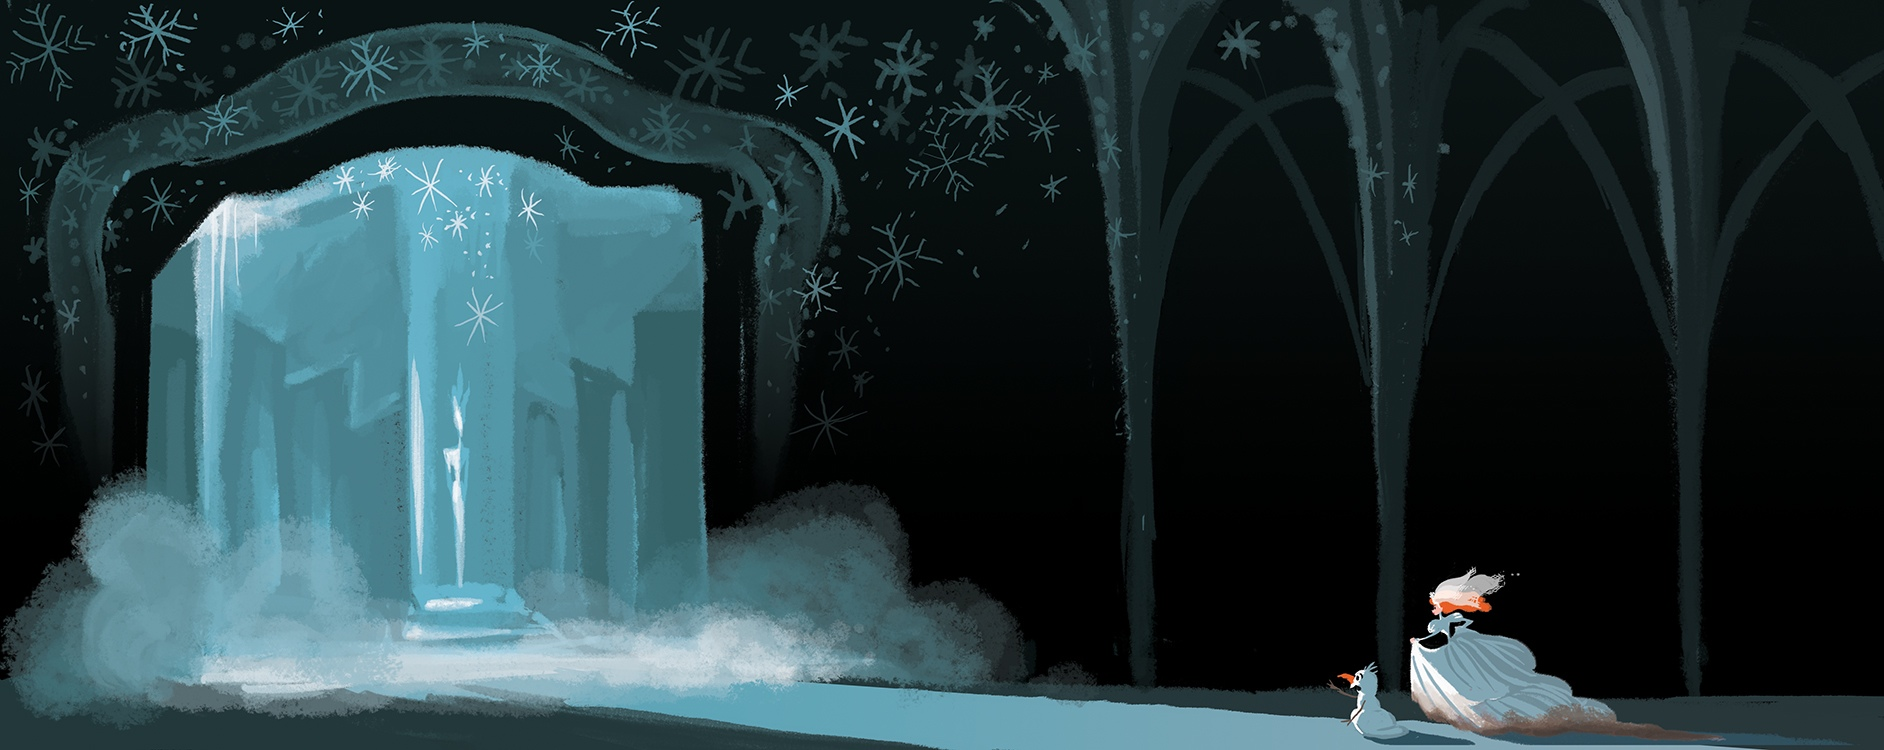 ANNA COMING TO RESCUE THE SNOW QUEEN //VISUAL DEVELOPMENT FOR FROZEN